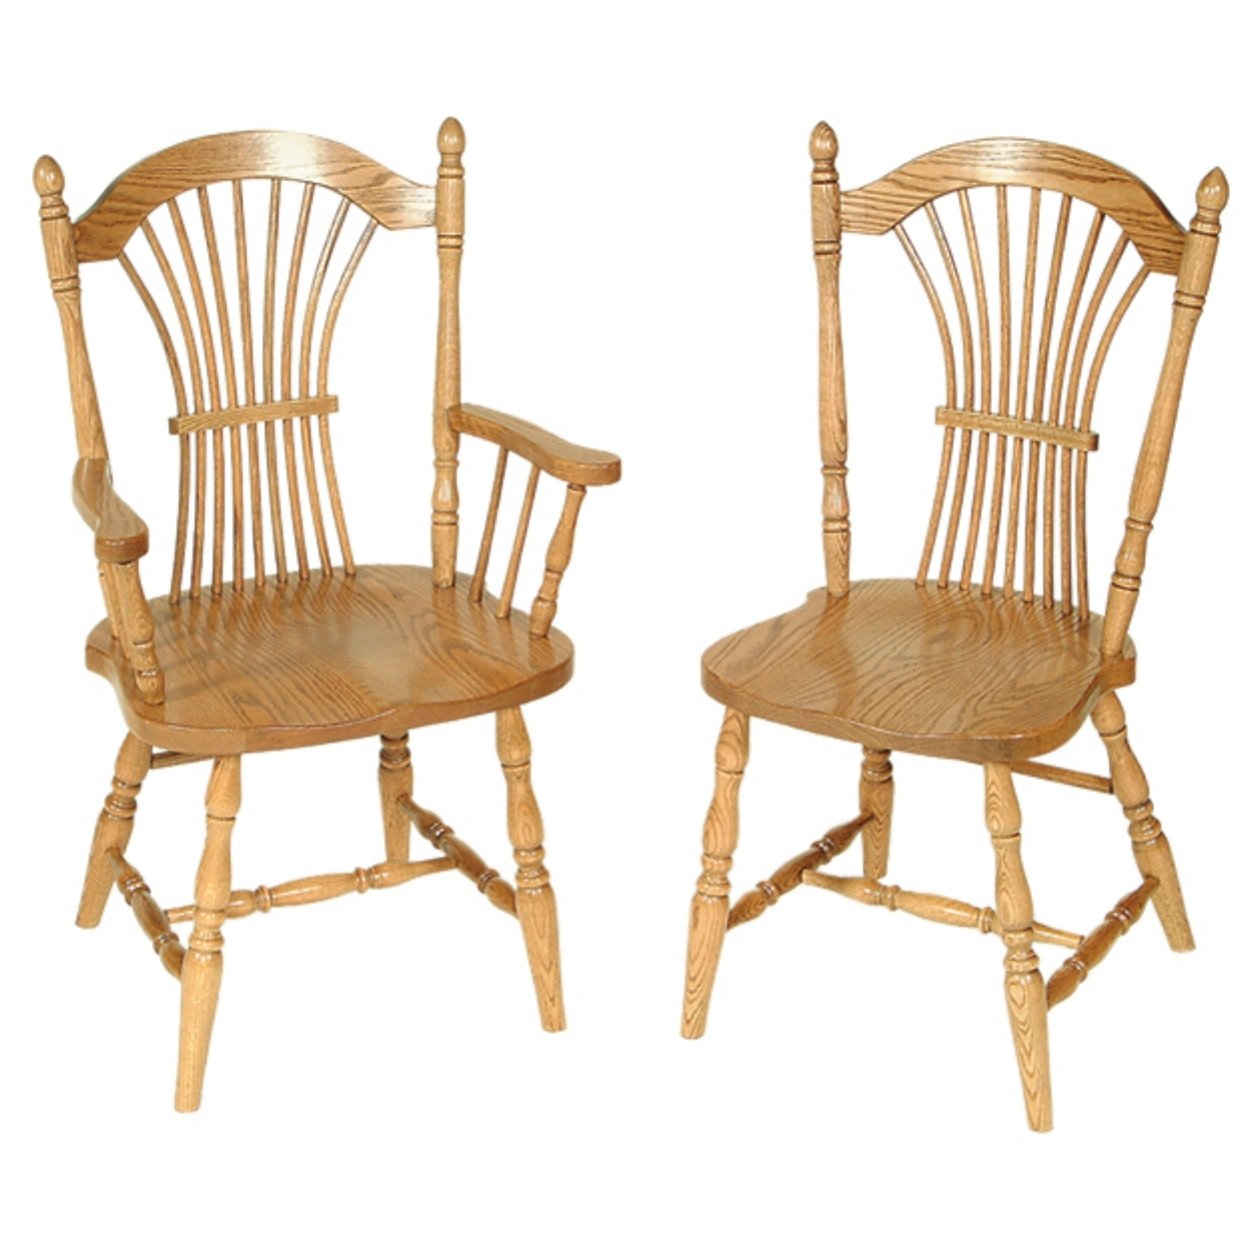 Penns Creek Harvest Back Chairs    Starting at: $359.99